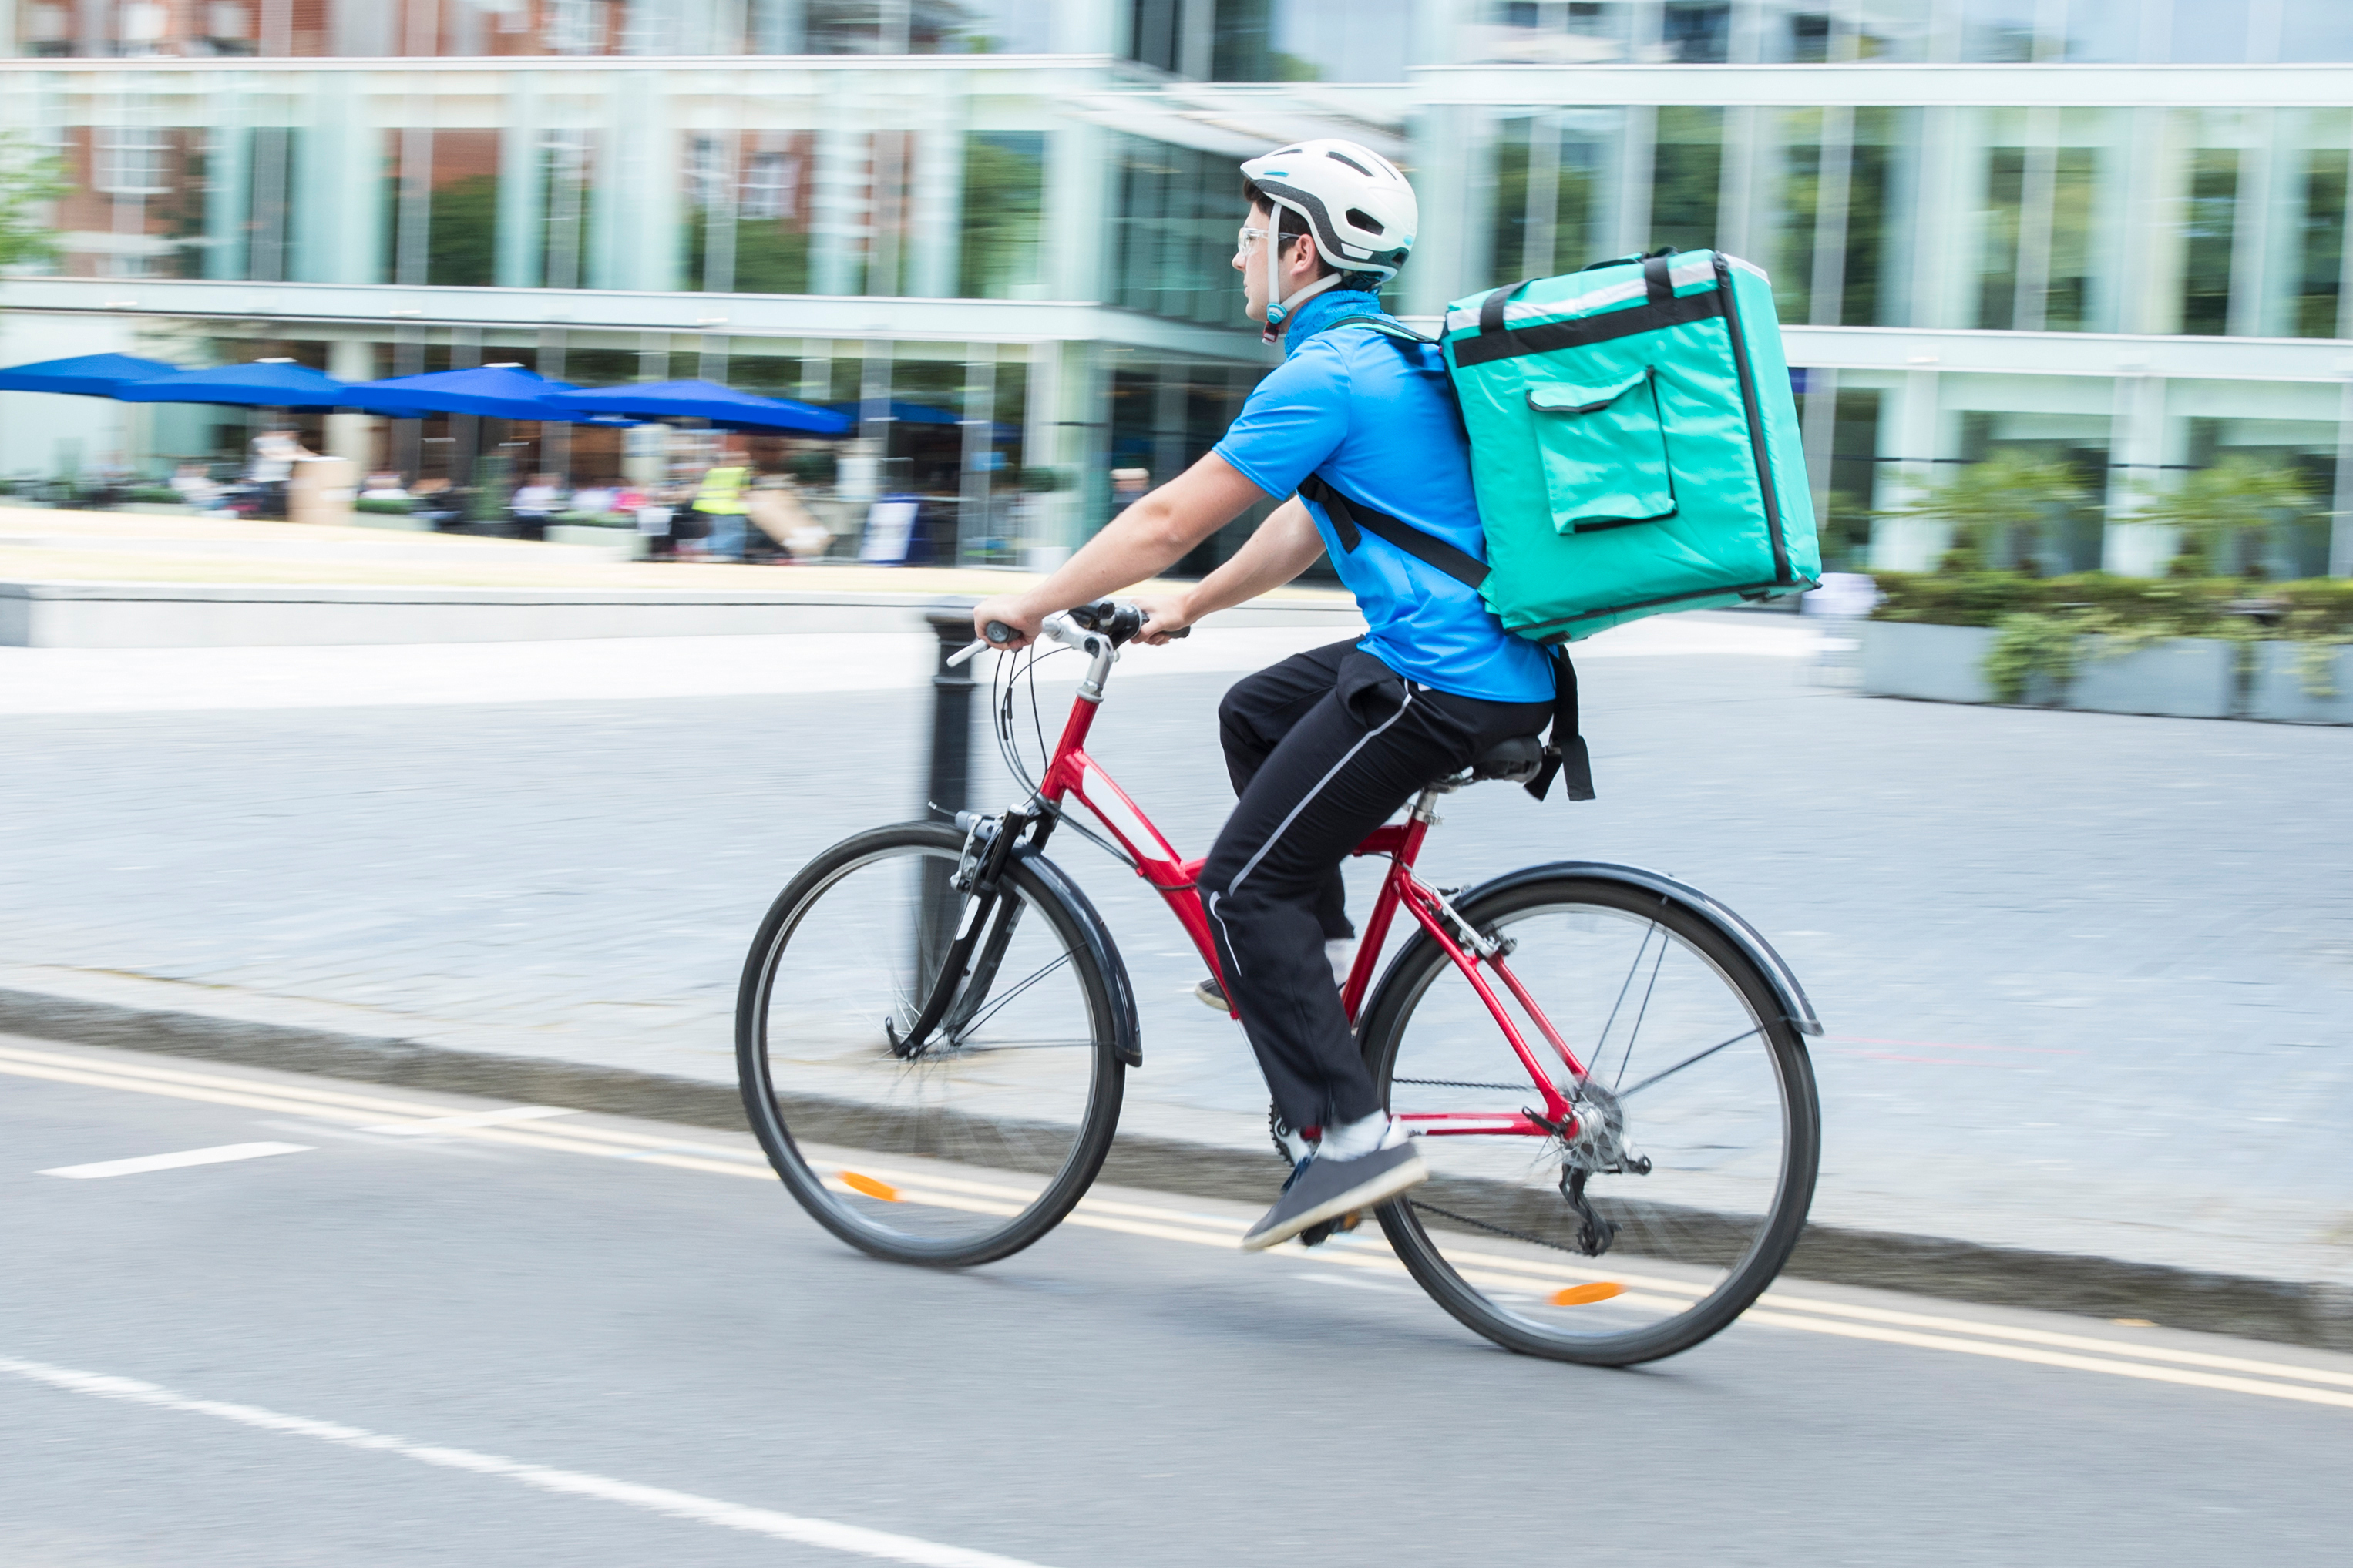 A helmet-wearing delivery person on a bike with a meal warmer strapped to his back.